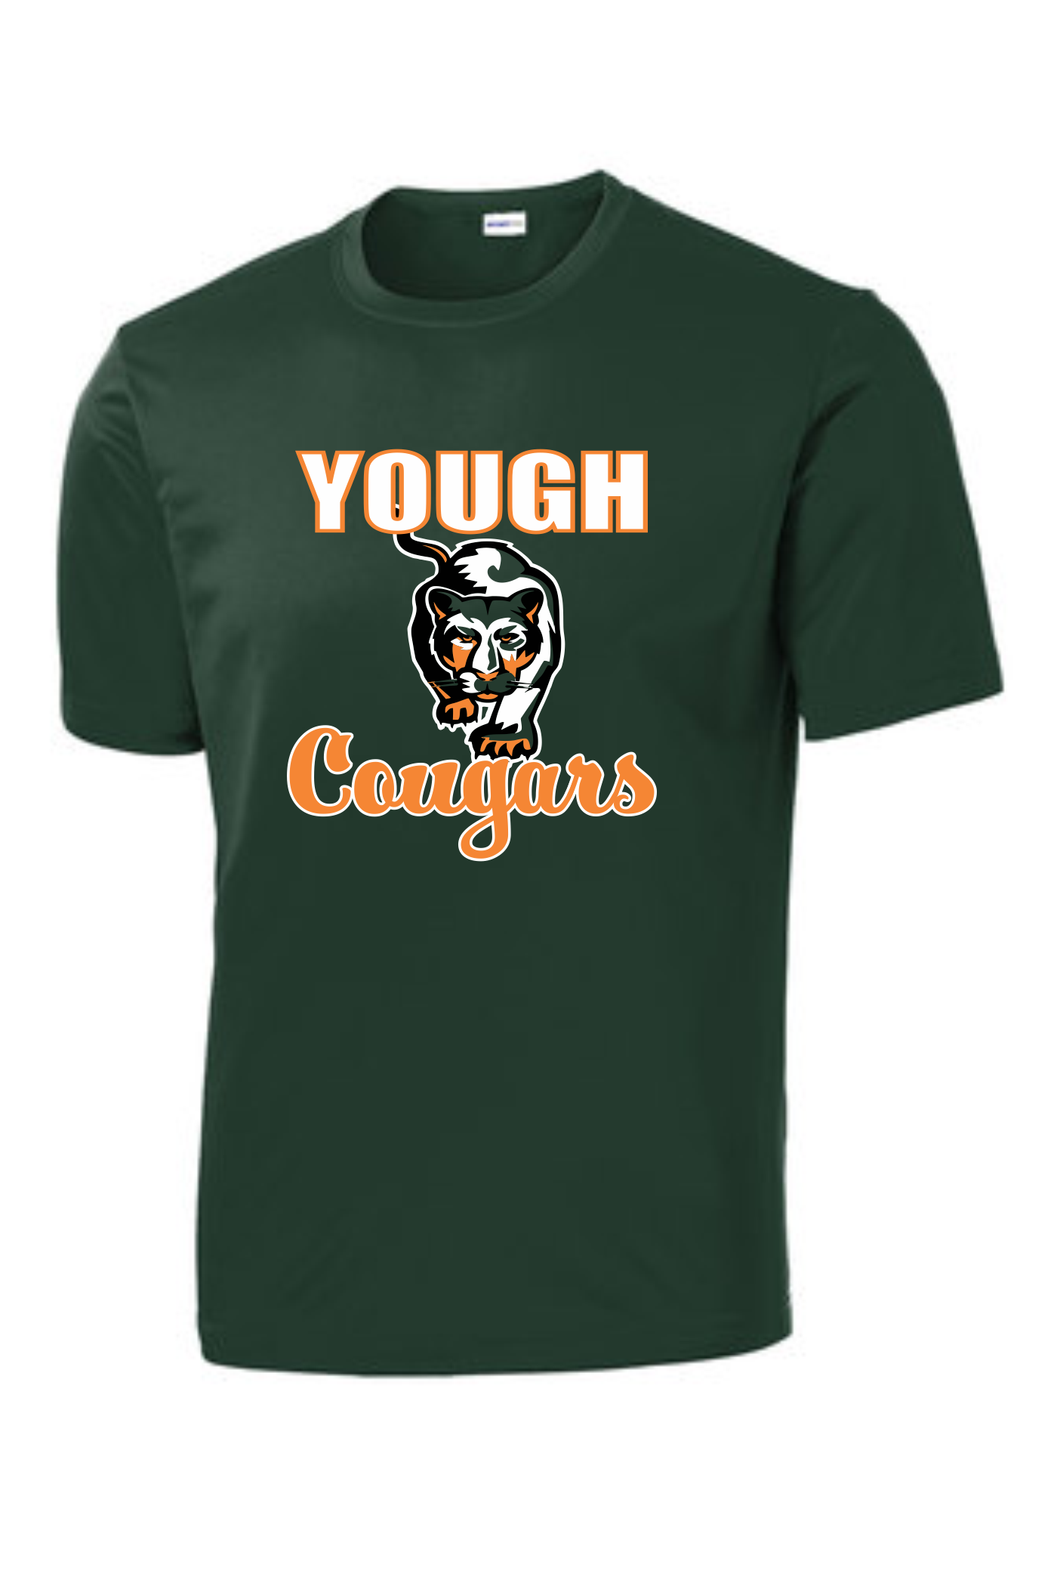 Yough Cougars Printed Performance T-Shirt